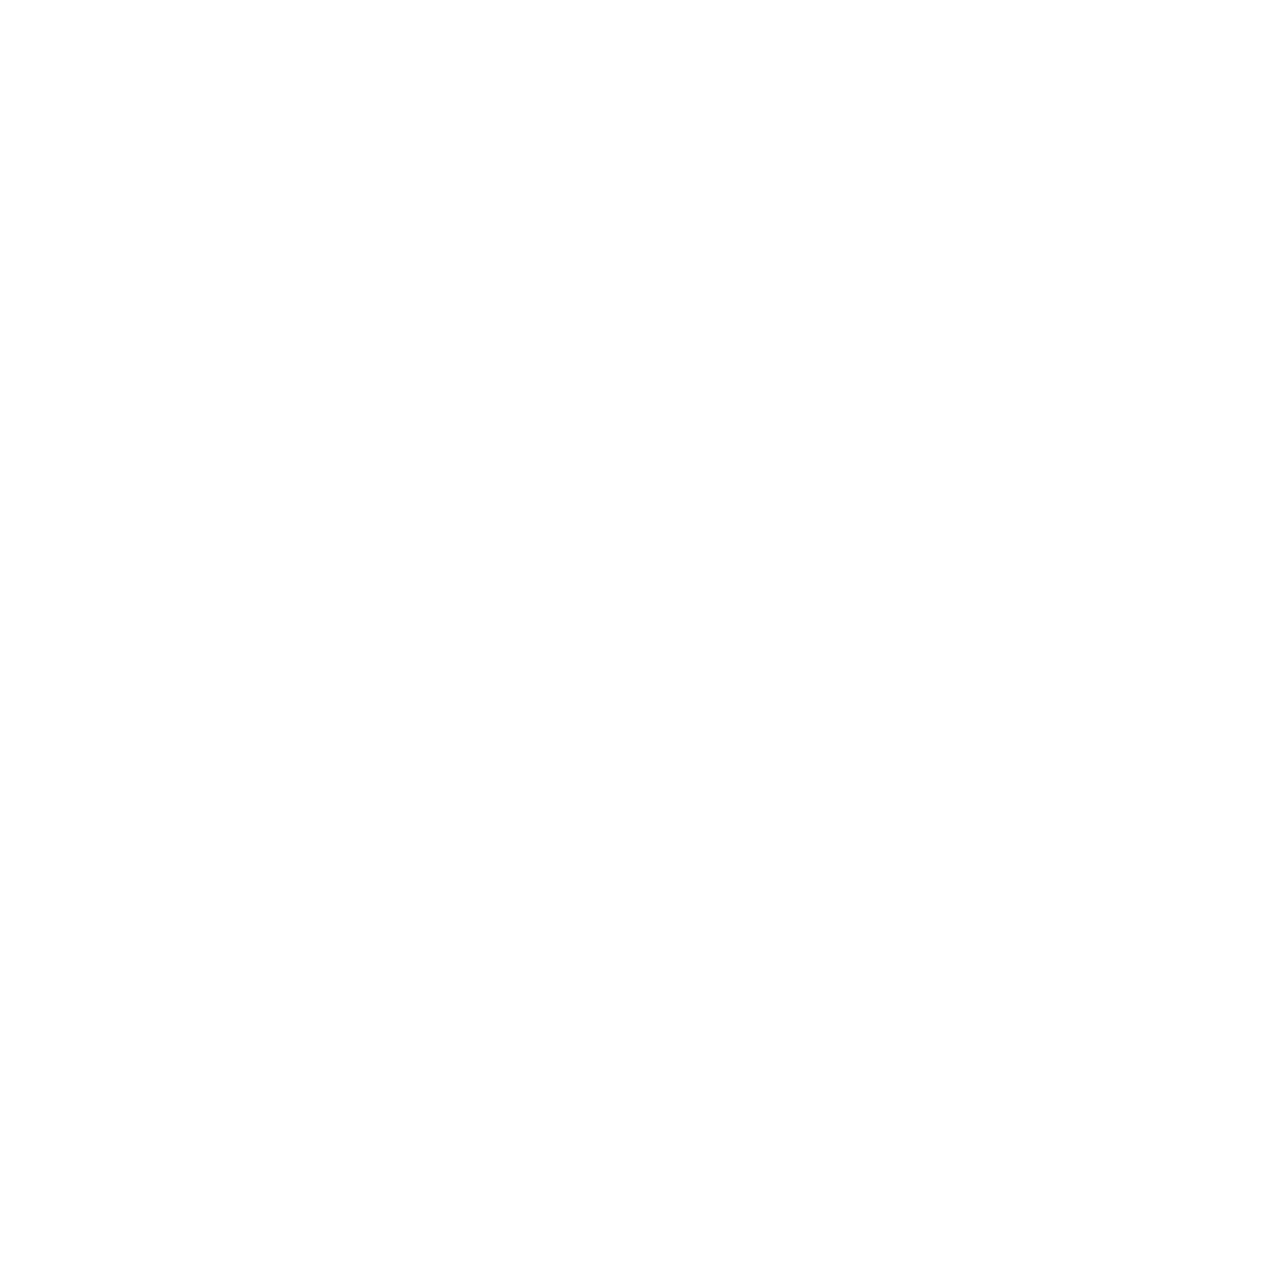 HSM White.png